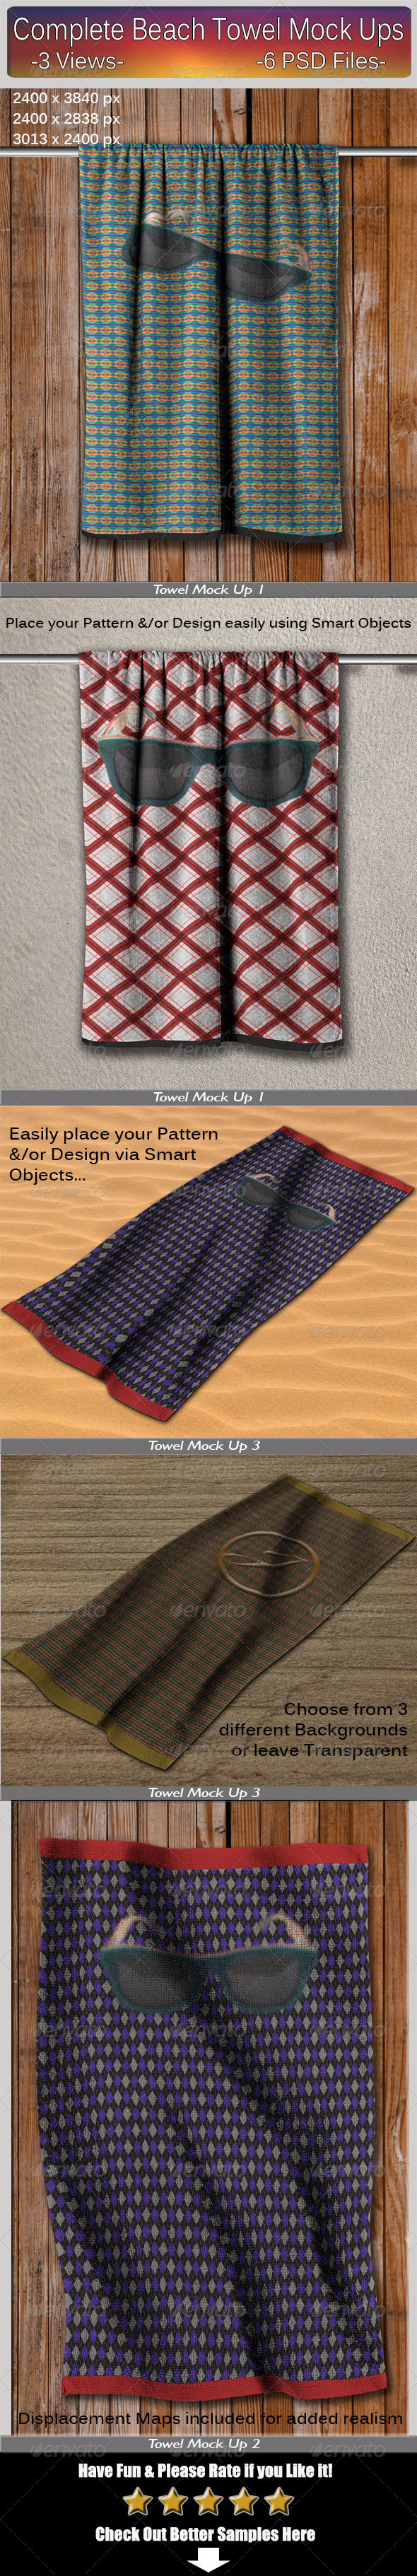 GraphicRiver Complete Beach Towel Mock Ups 7786860